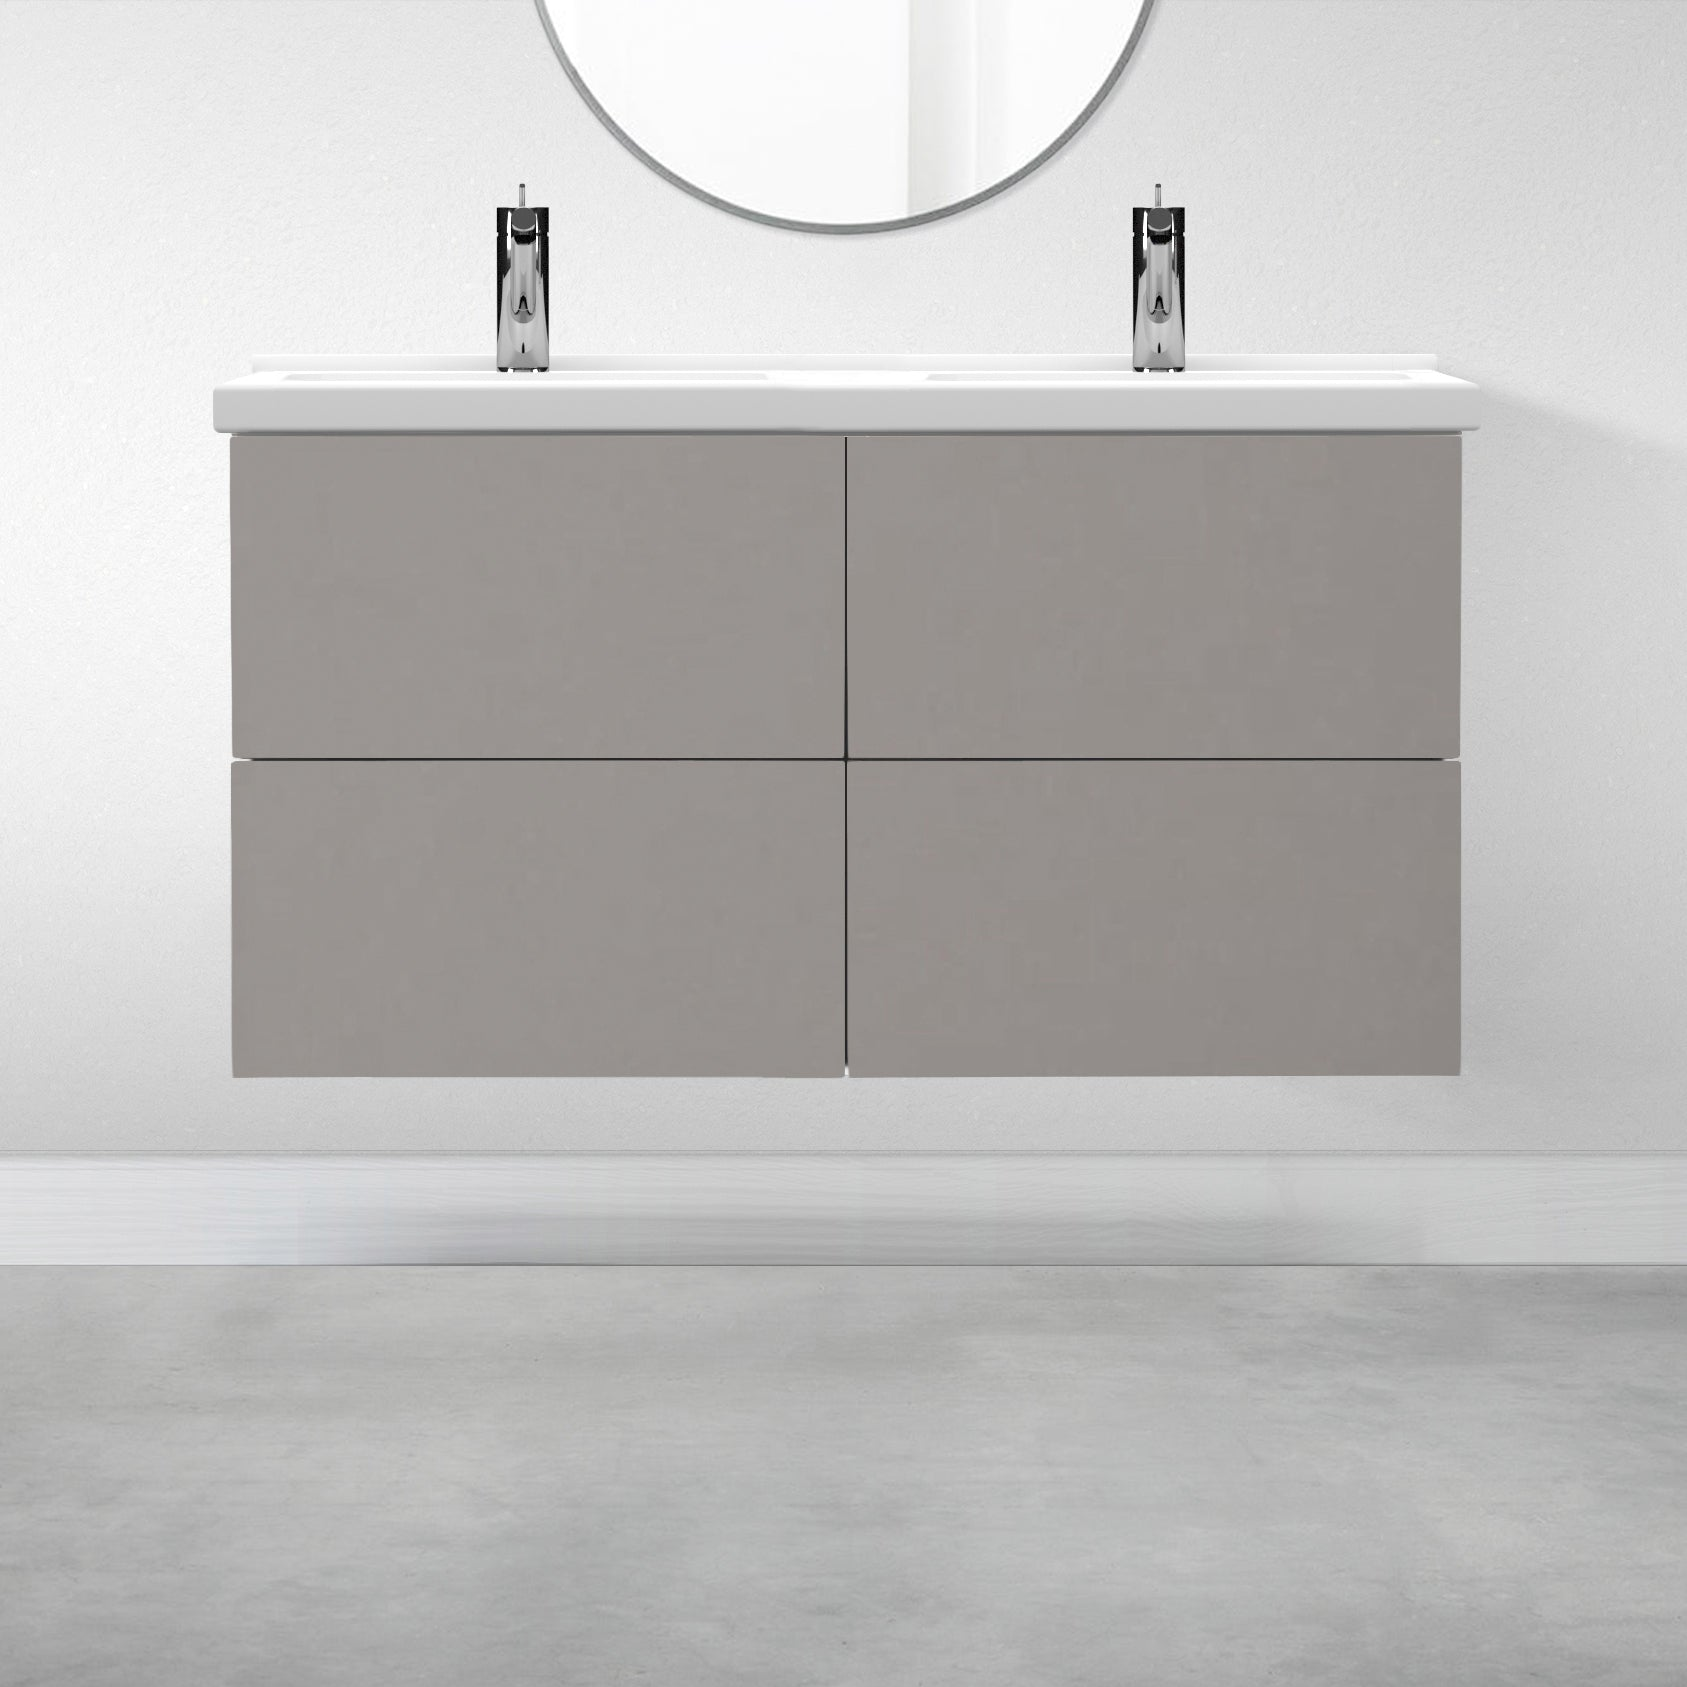 "4 Drawers - 47 1/4"" for Godmorgon Supermatte Slab / Light Grey"